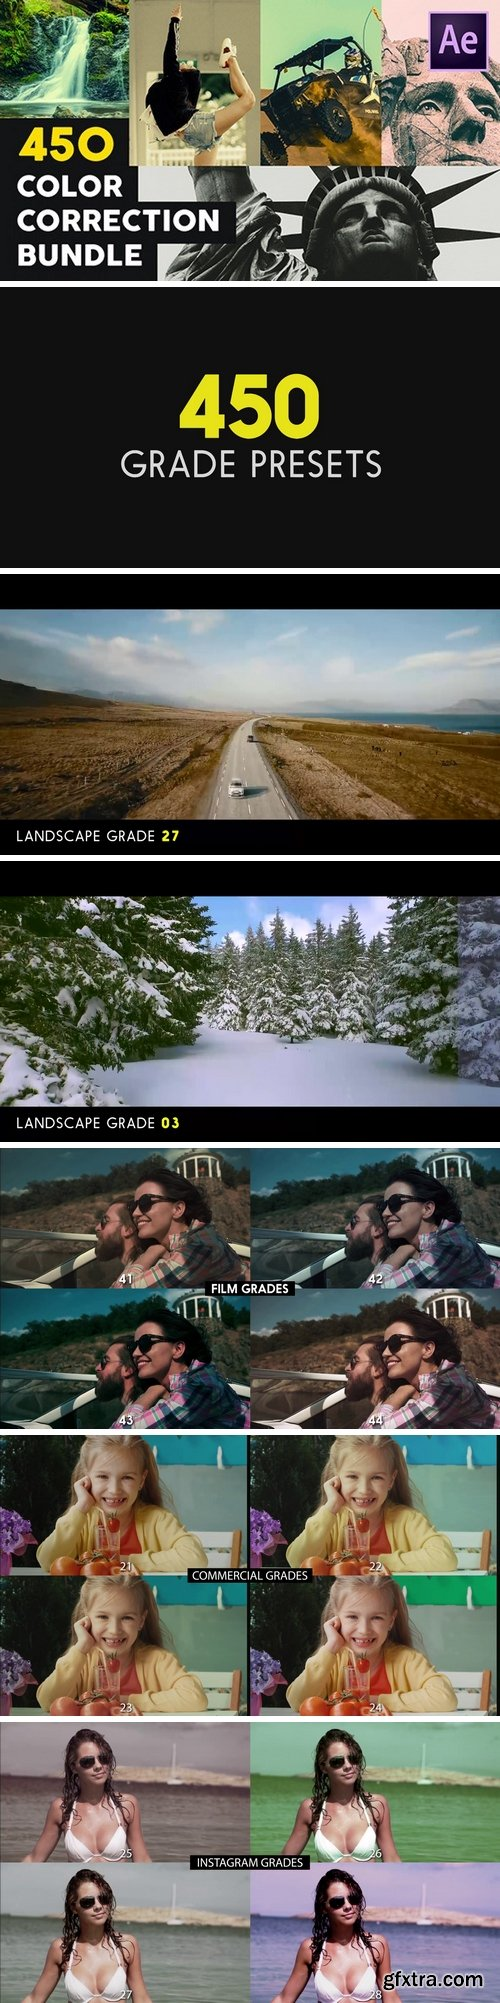 MA - 450 Color Correction Bundle After Effects Presets 141934